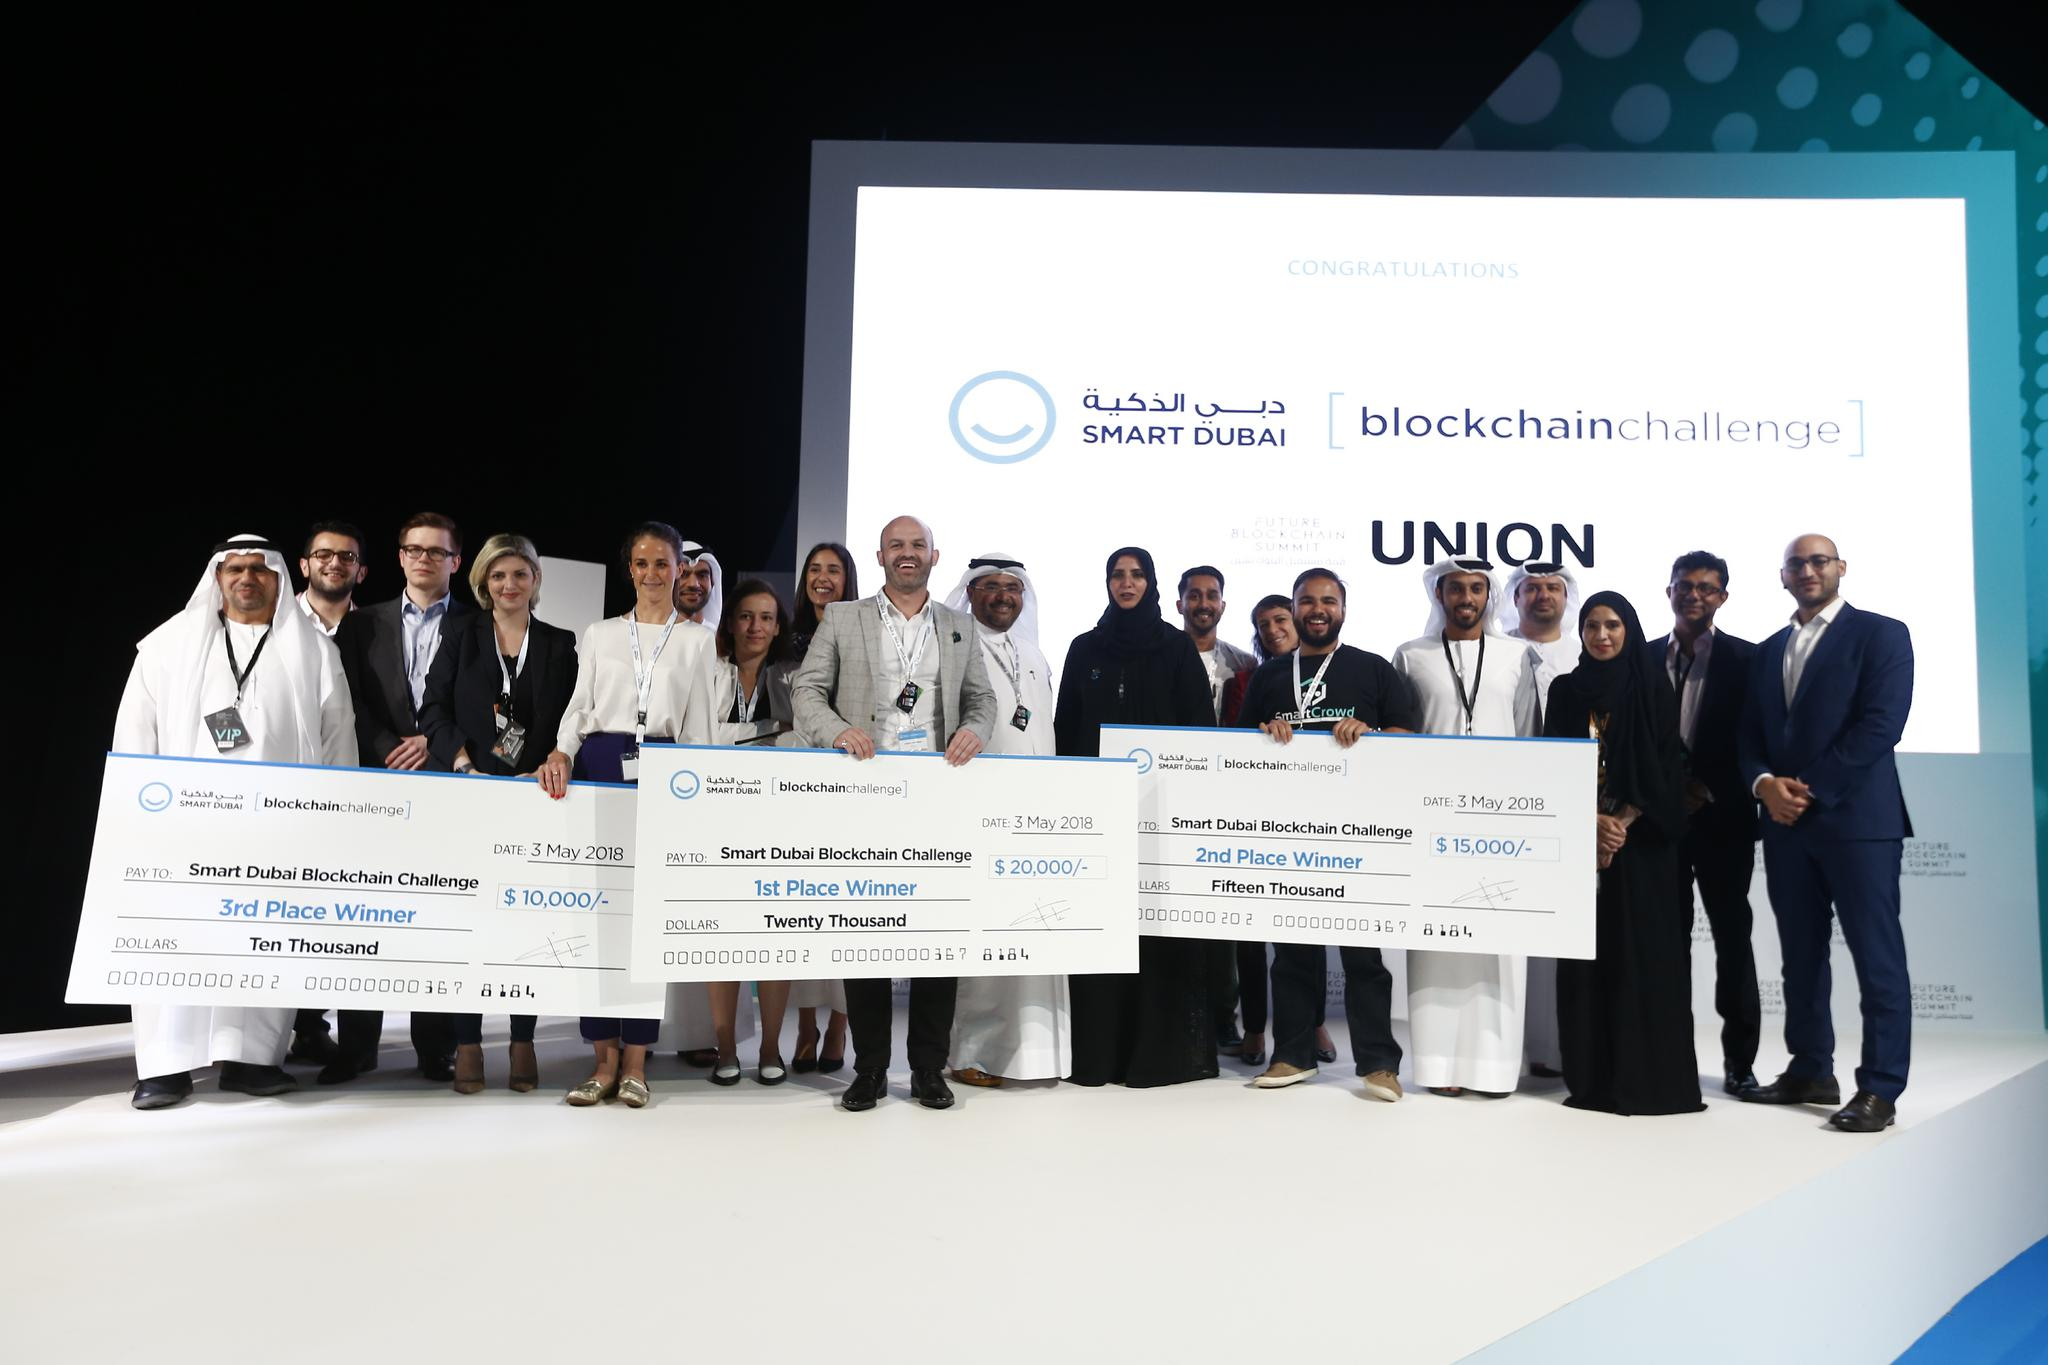 Smart Dubai gearing up to launch the third round of the Global Blockchain Challenge